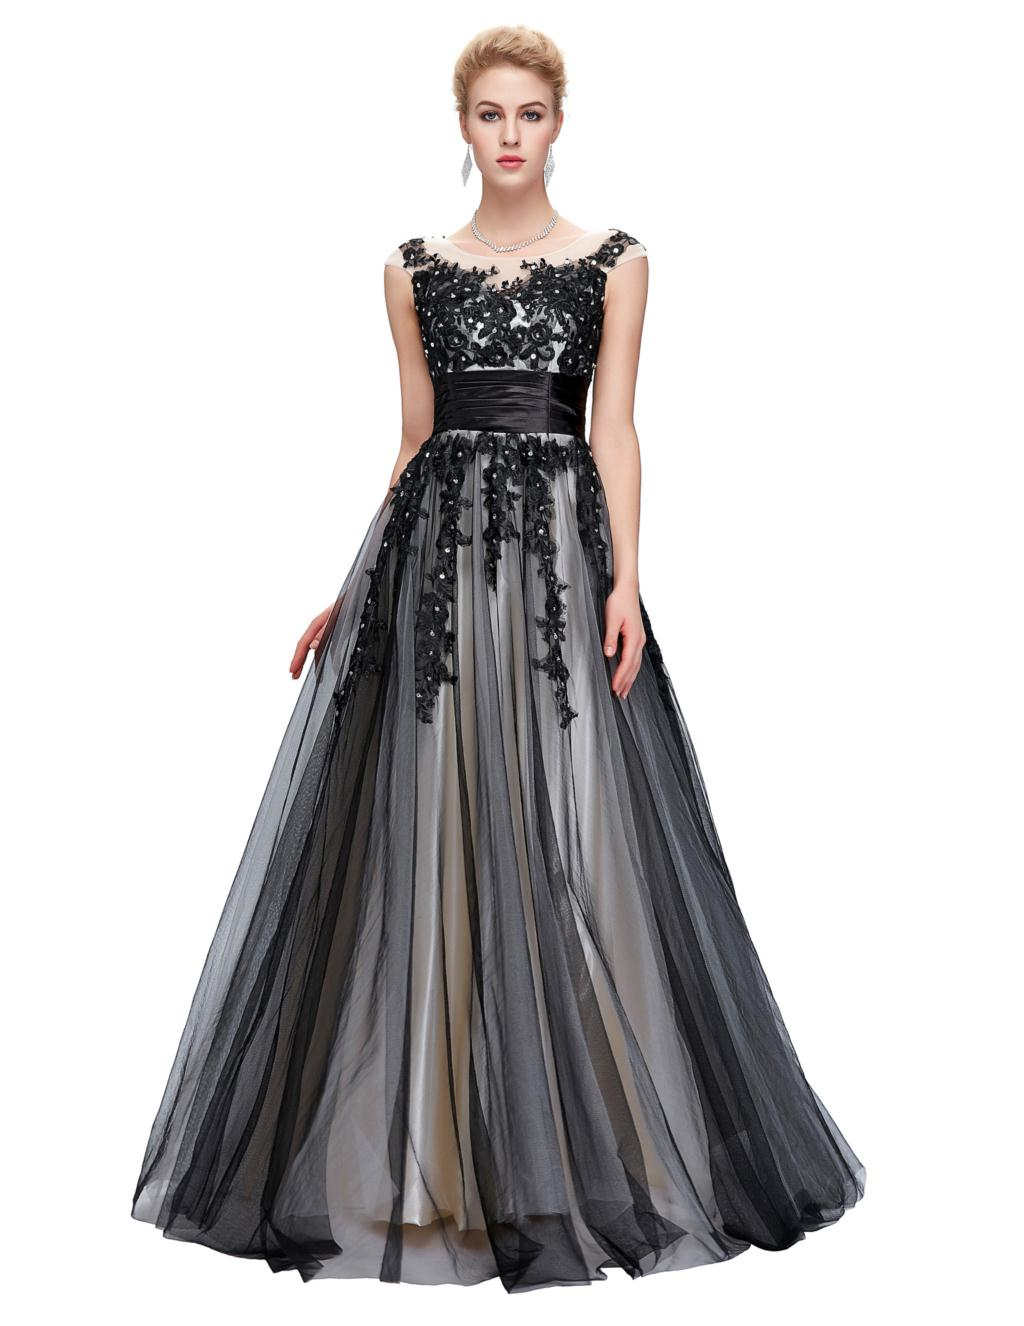 Grace Karin Sexy Black Long Evening Dress 2016 Applique Mother Bride Dresses Party Formal Robe De Soiree GK61 - Co. Limited store